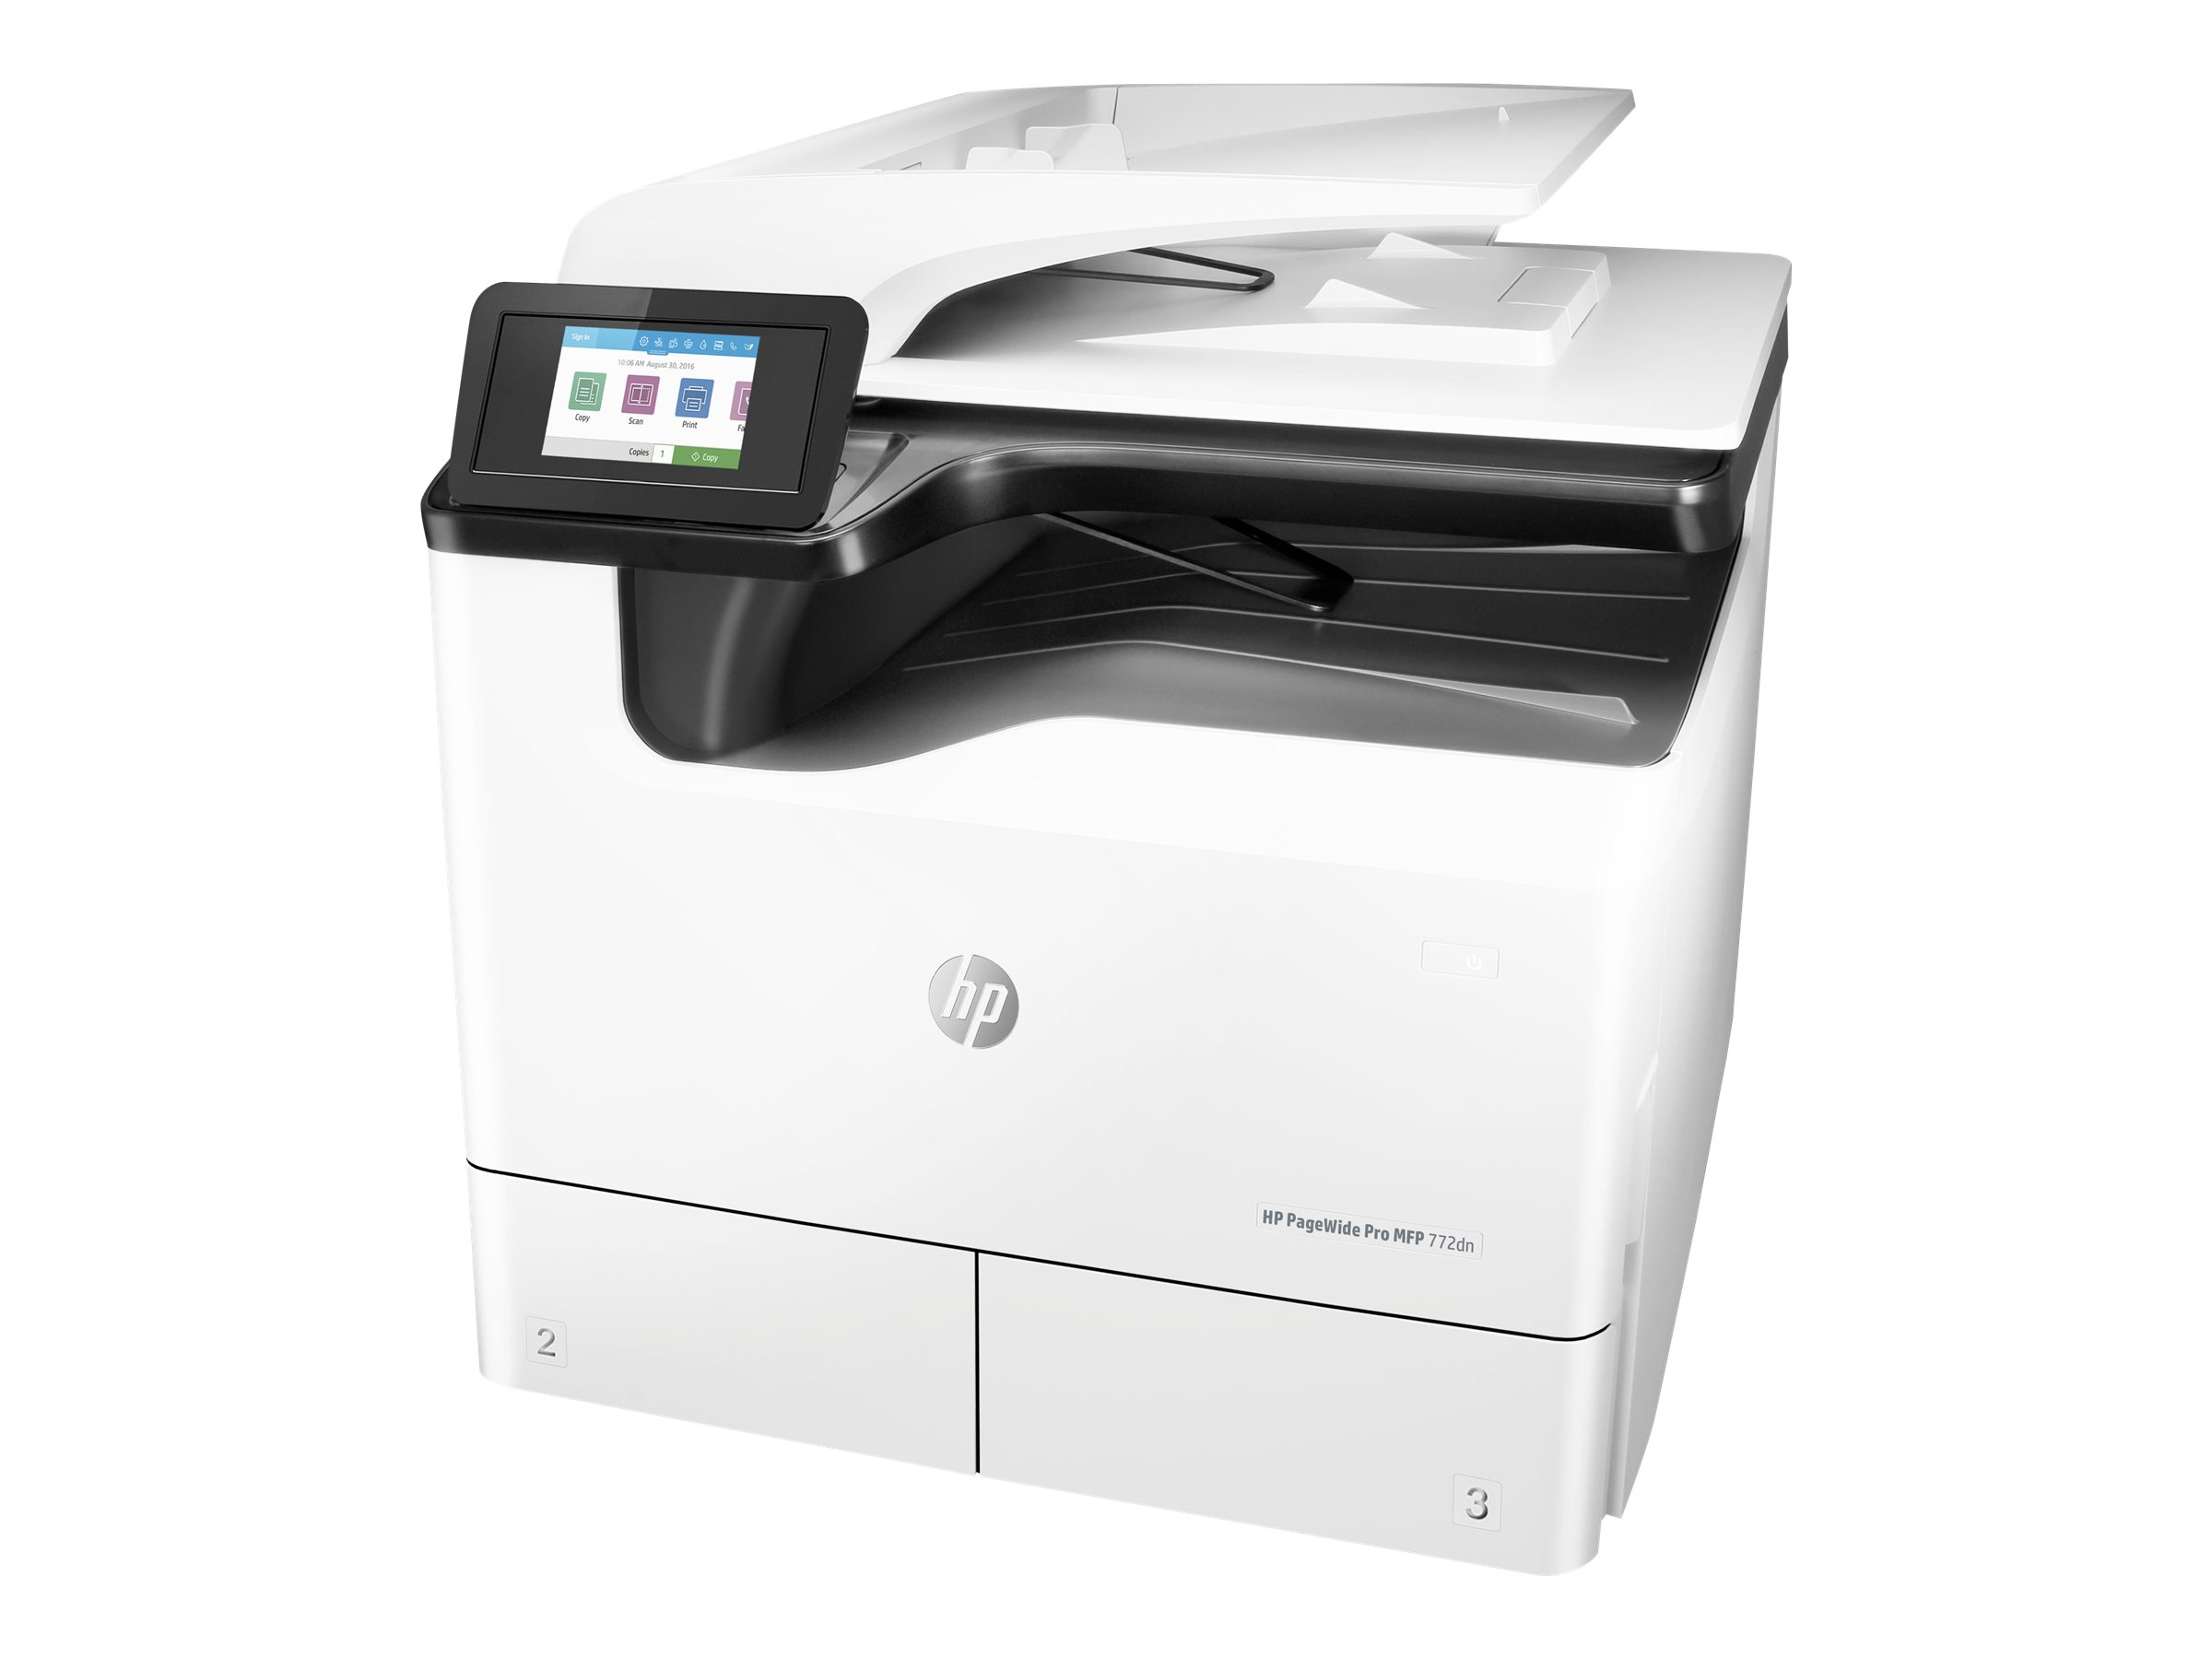 HP PageWide Pro 772dn - Multifunktionsdrucker - Farbe - Tintenstrahl - A4 (210 x 297 mm)